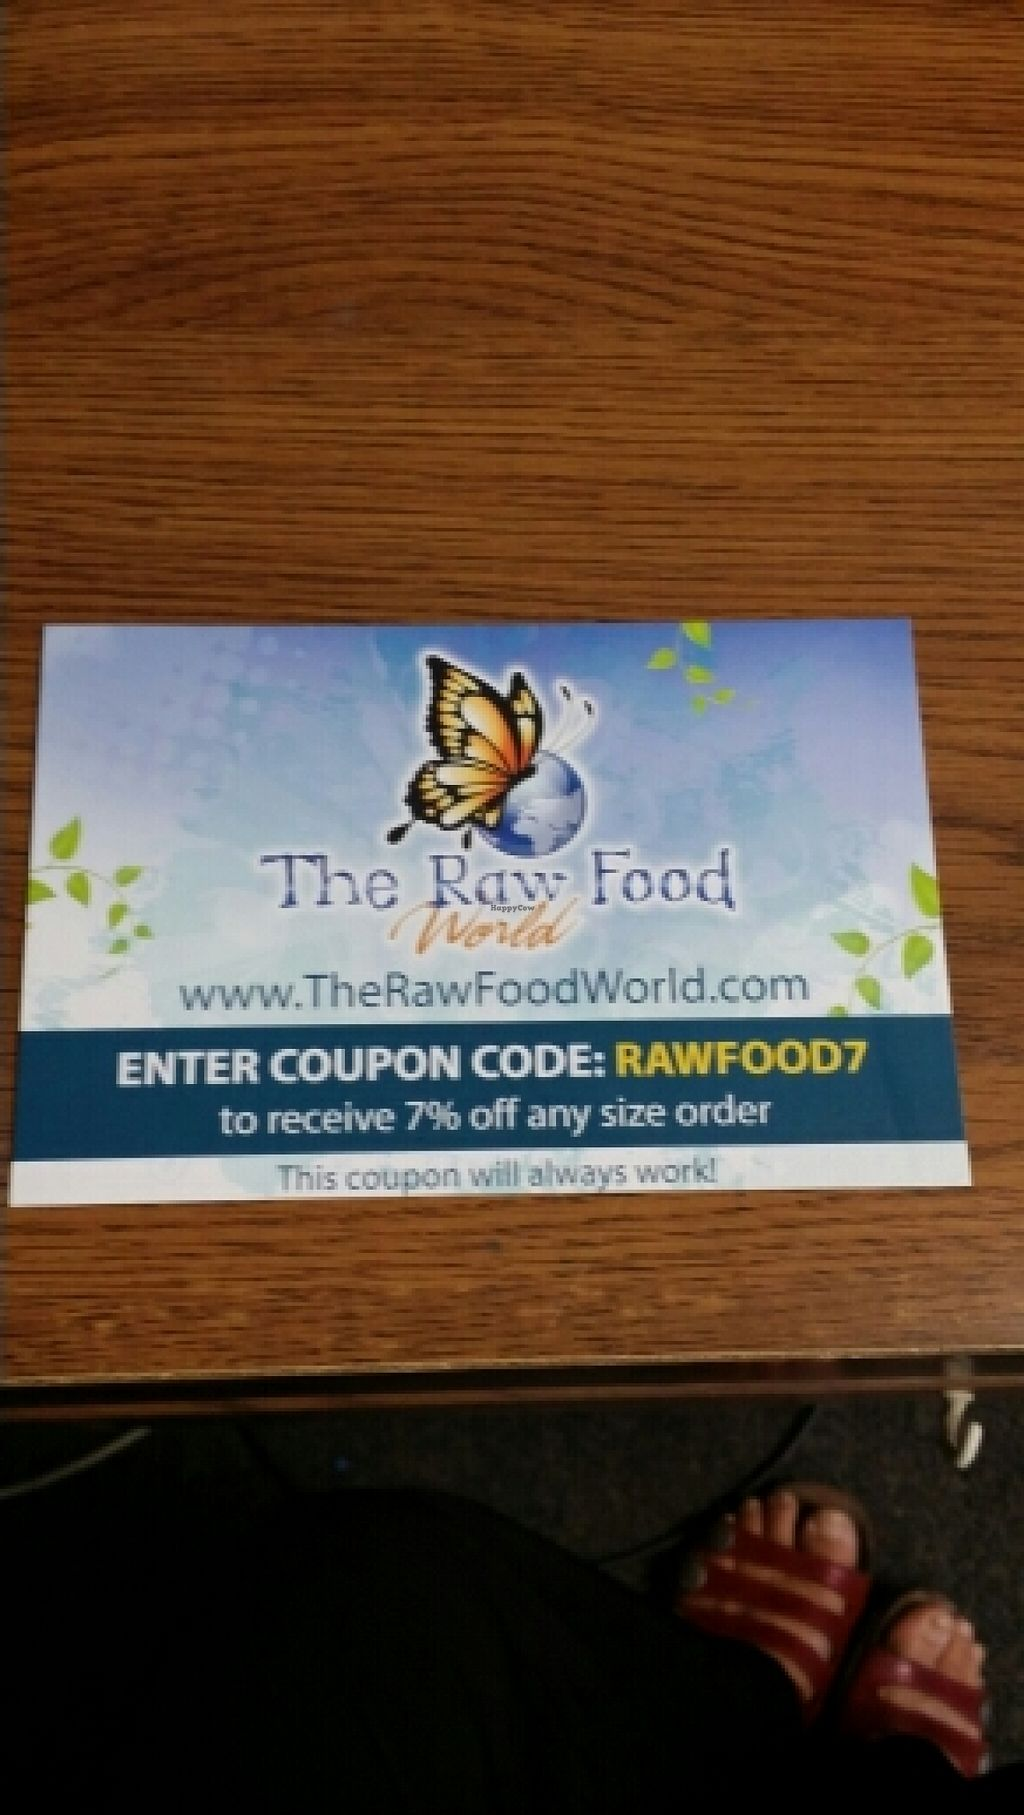 """Photo of The Raw Food World  by <a href=""""/members/profile/catbone"""">catbone</a> <br/>Online 7% discount Coupon Code (works everytime) <br/> March 12, 2016  - <a href='/contact/abuse/image/30512/139651'>Report</a>"""